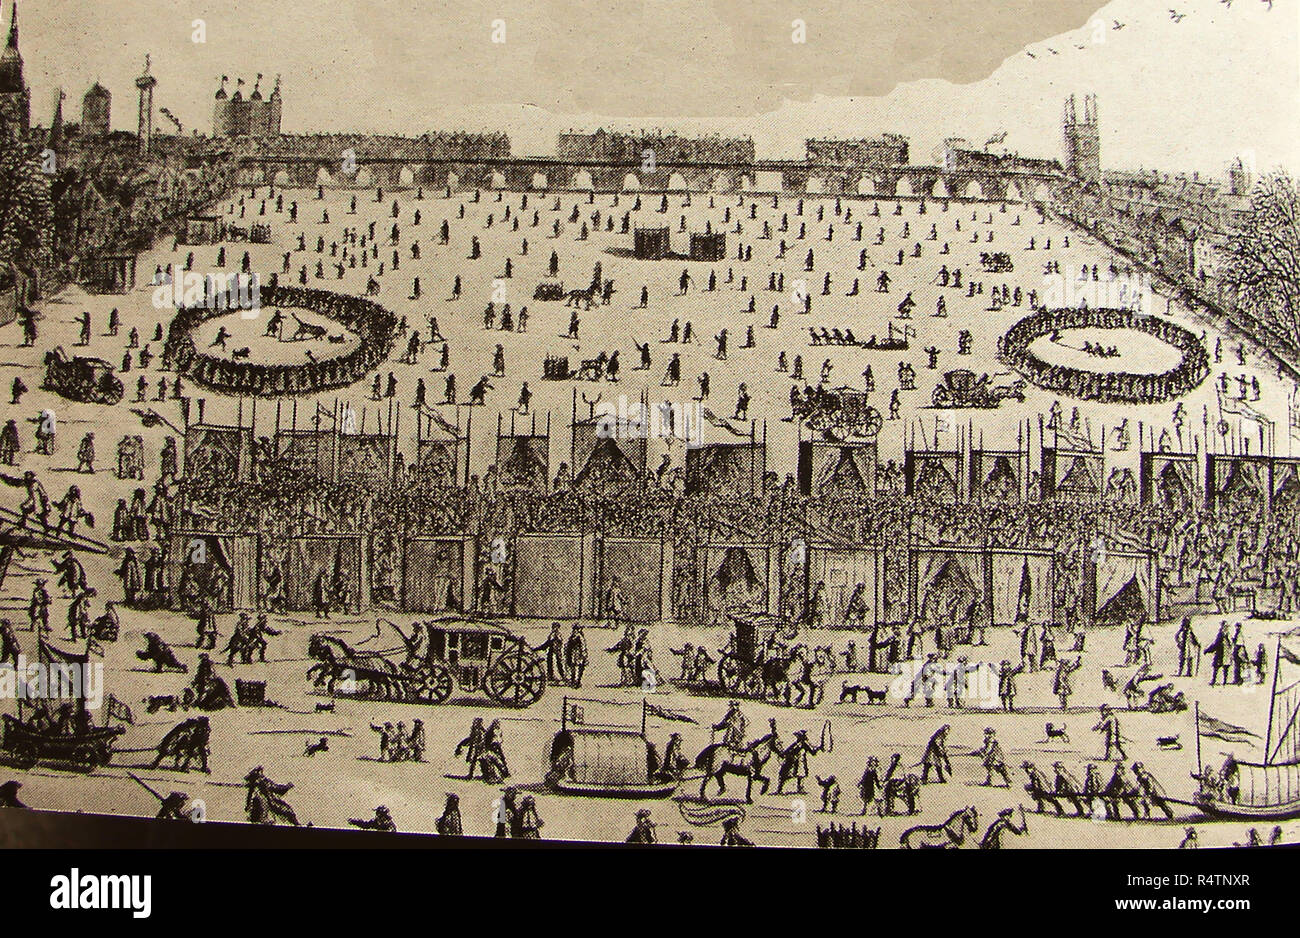 One of London's Great Frost Fairs held on the frozen Thames river between 1683-1684  (during  the worst frost recorded in England) - Stock Image